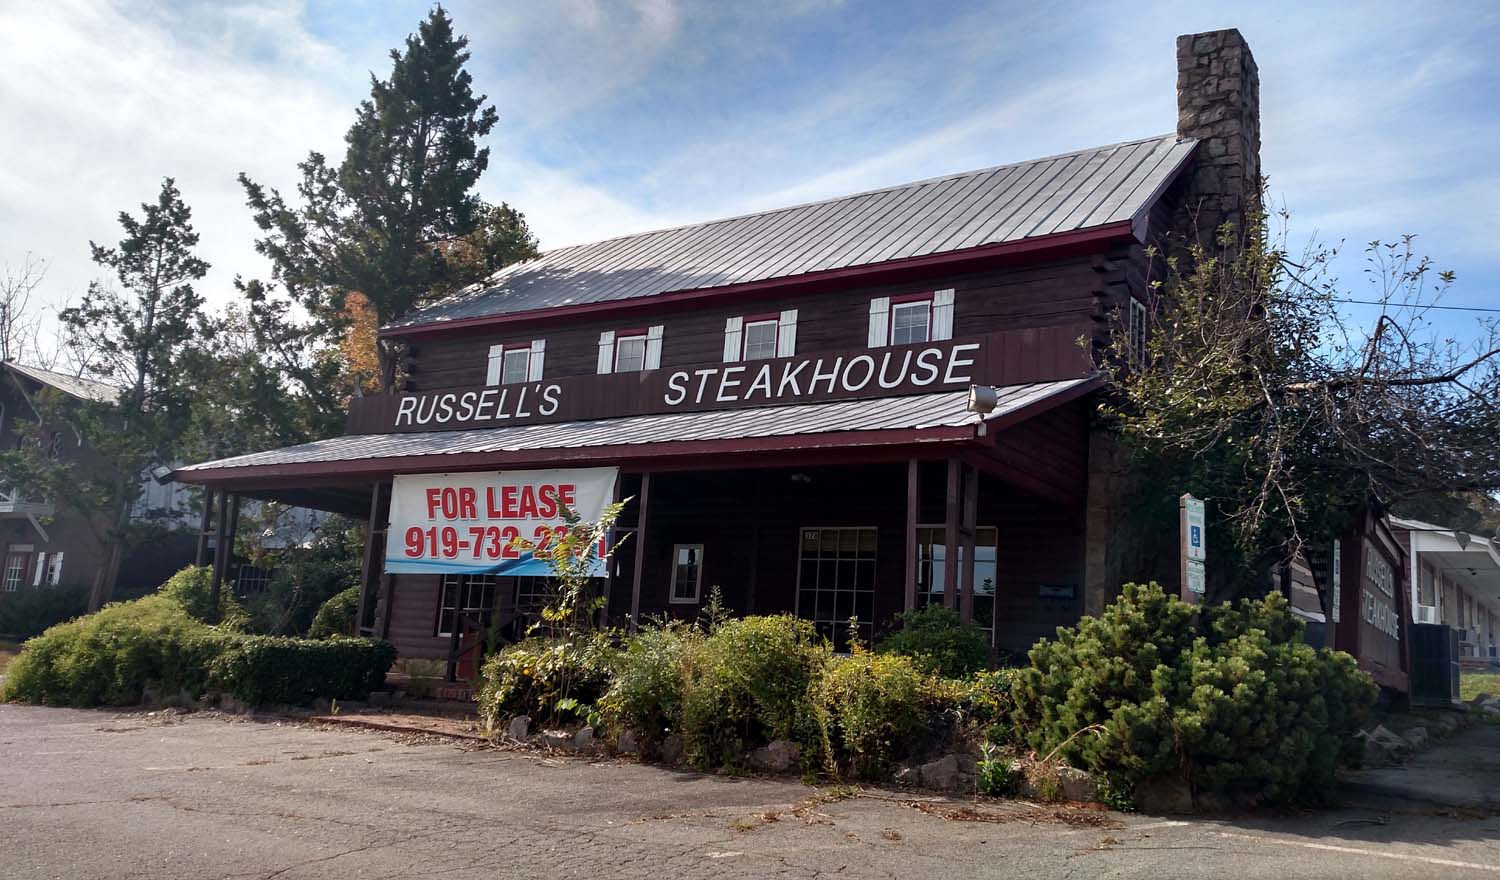 Russells Steak House